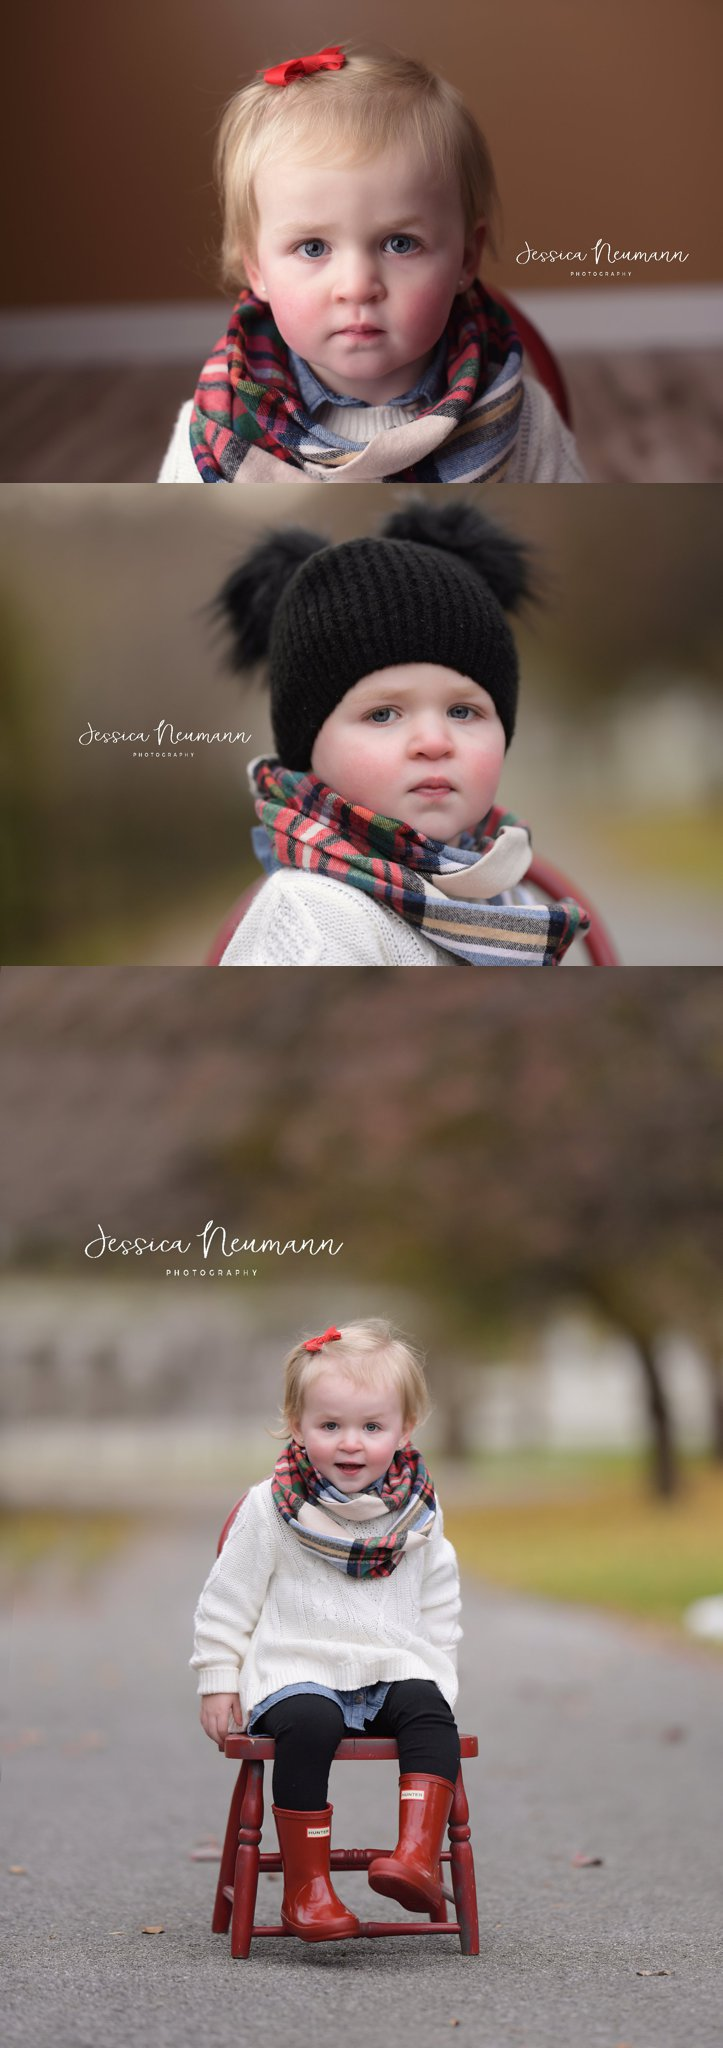 Two year old in photo studio and outside in New Market, Maryland